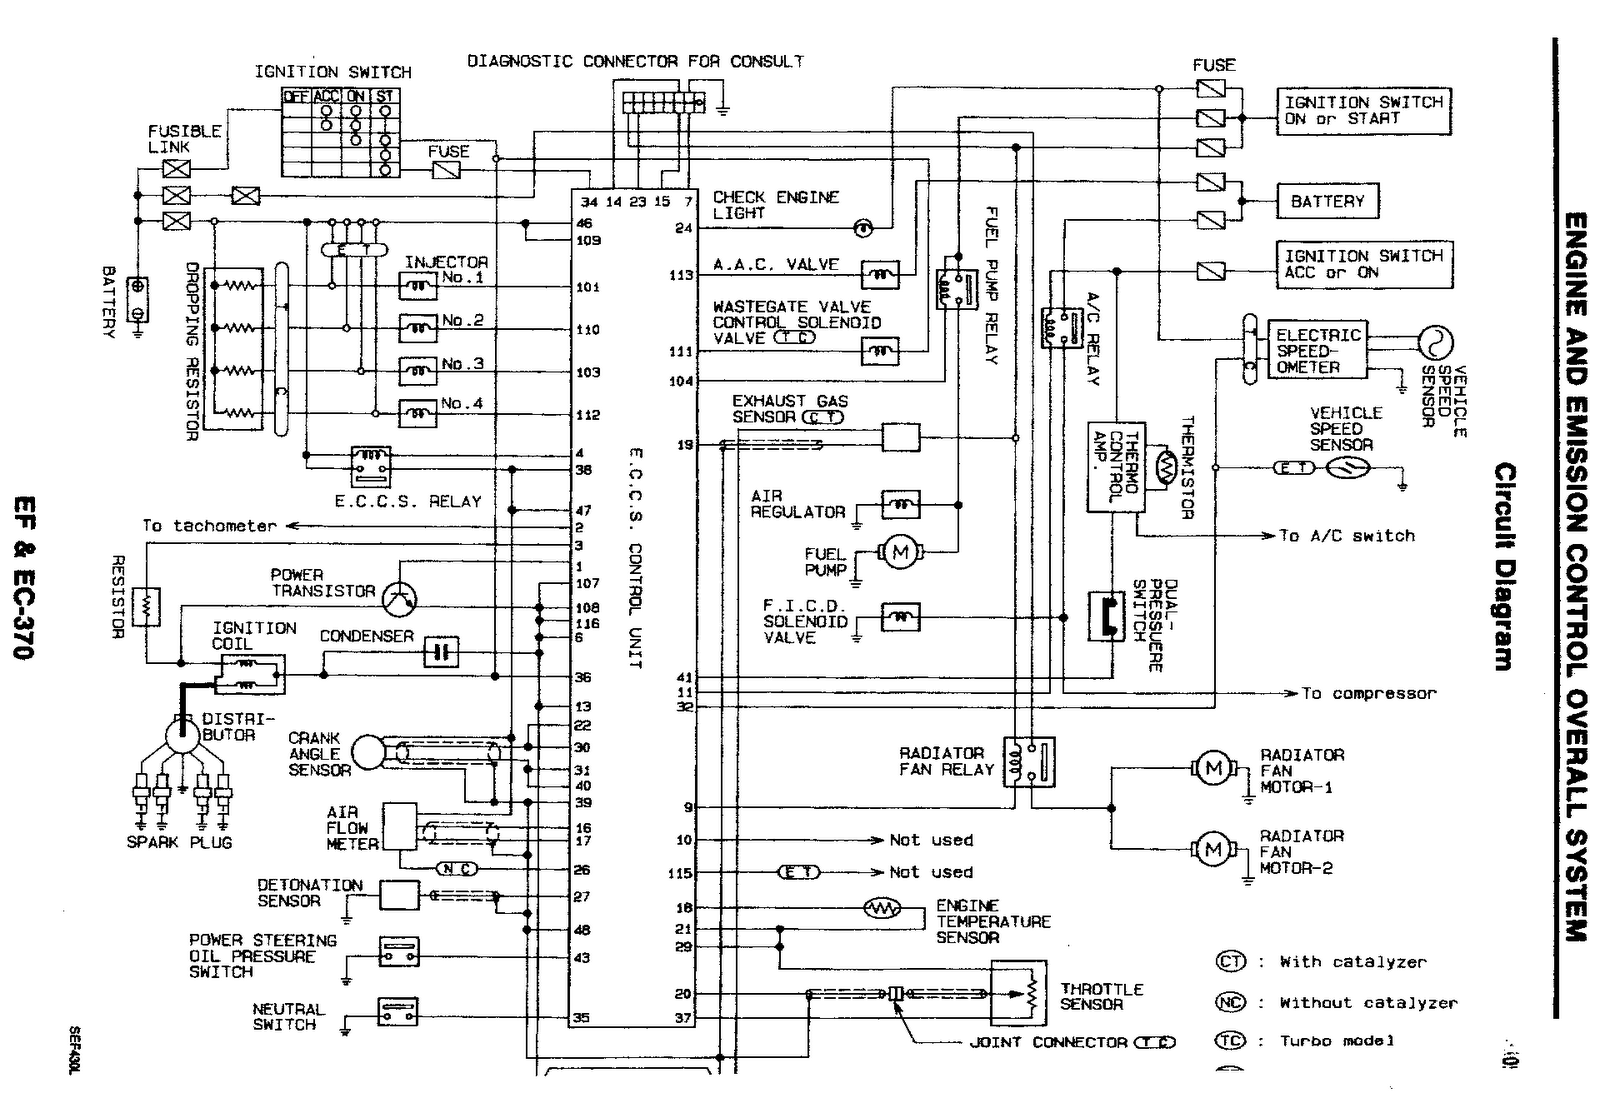 Audi Tt Wiring Diagrams 99 - wiring diagram solid-tools -  solid-tools.hoteloctavia.it | Audi Tt Wiring Diagram Pdf |  | hoteloctavia.it